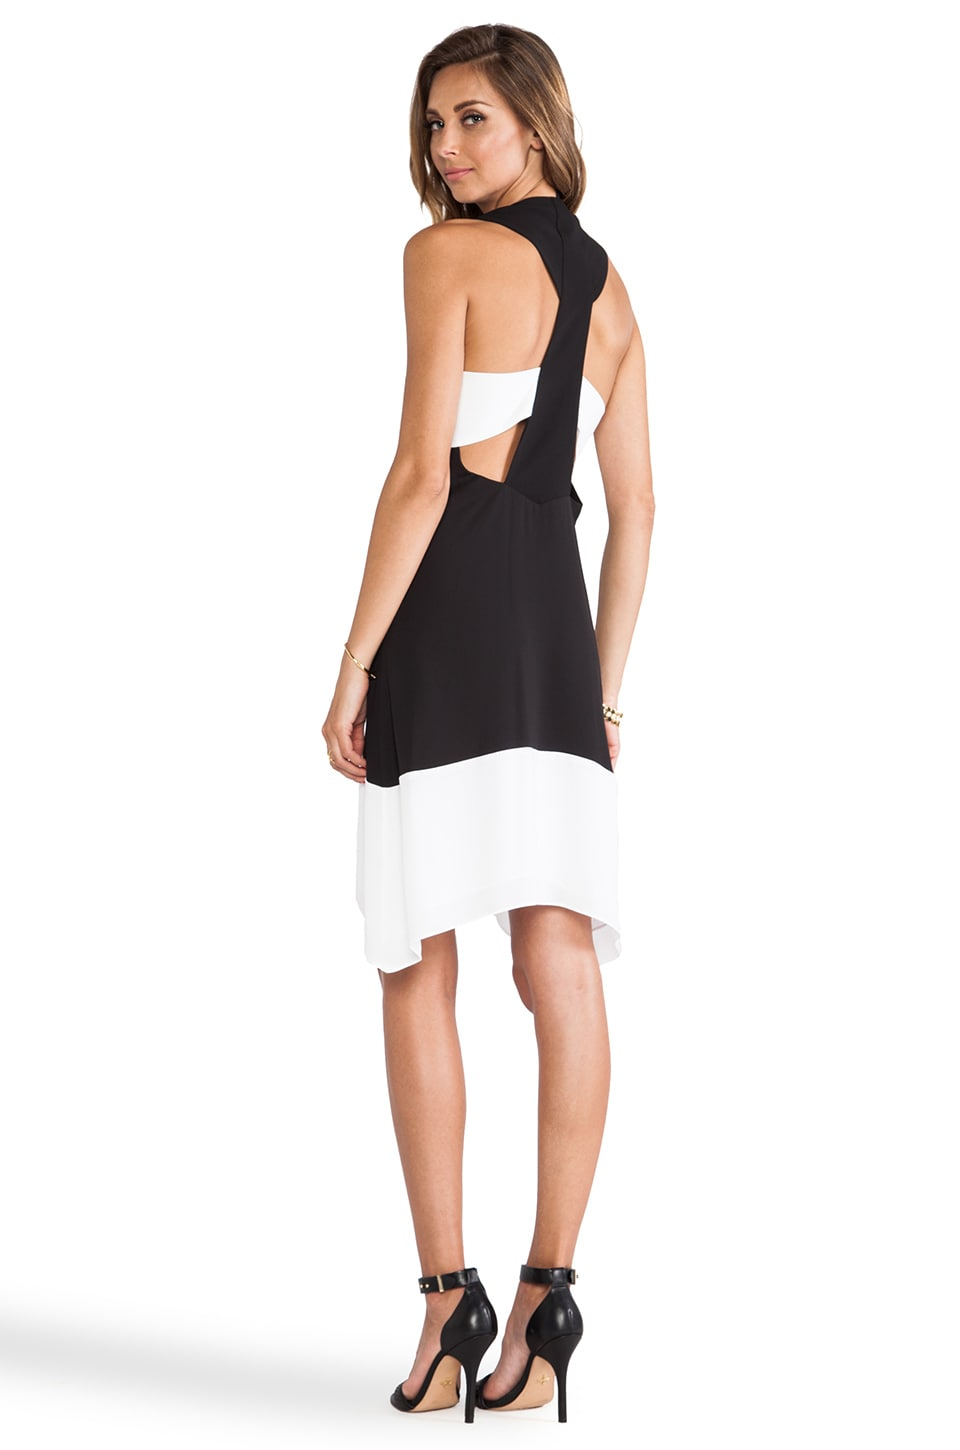 BCBGMAXAZRIA Kylie Color Block Dress in Black Combo